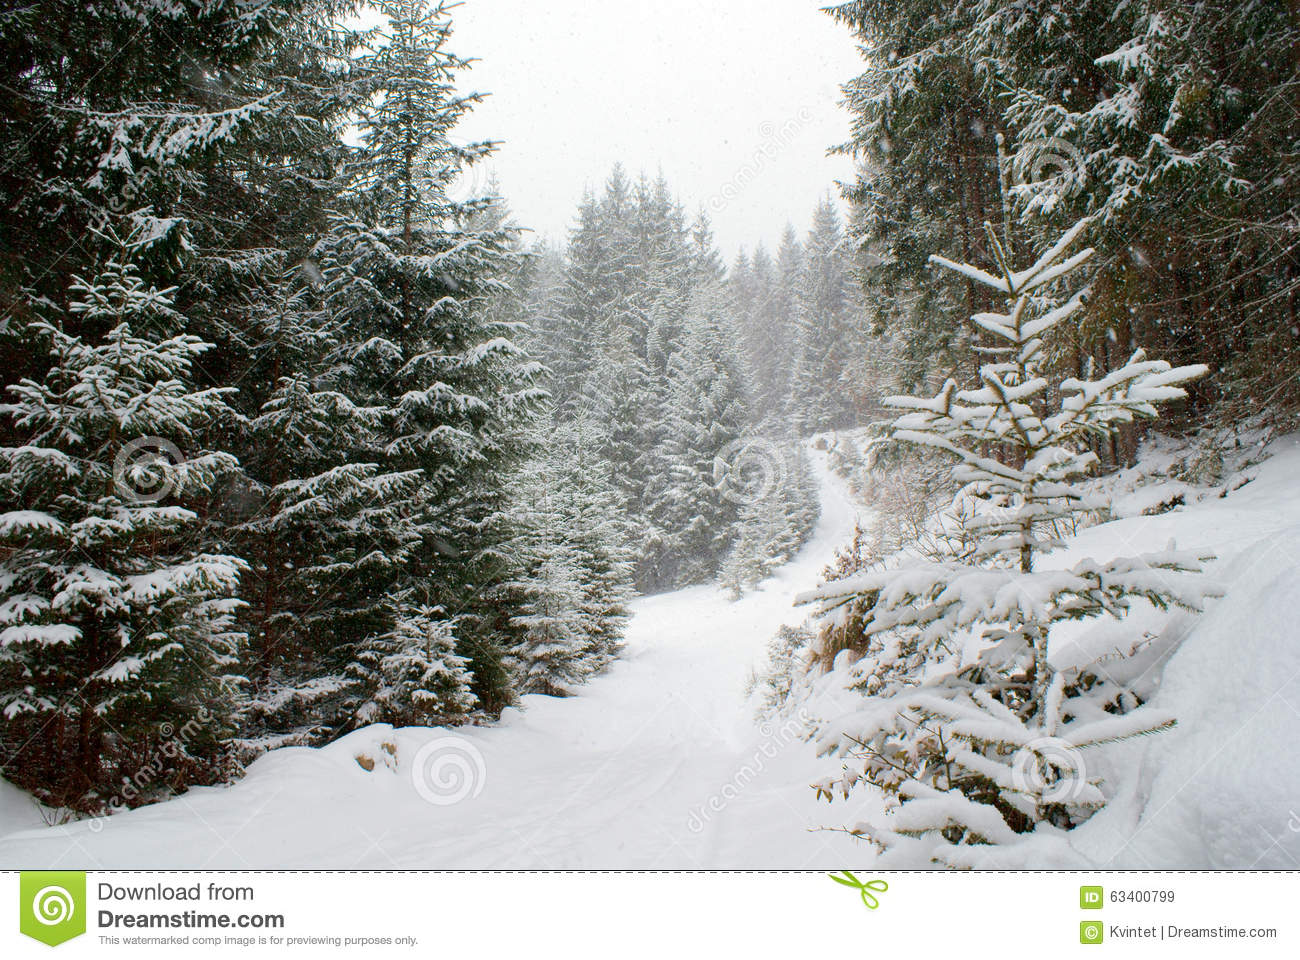 snowy fir trees forest - photo #19